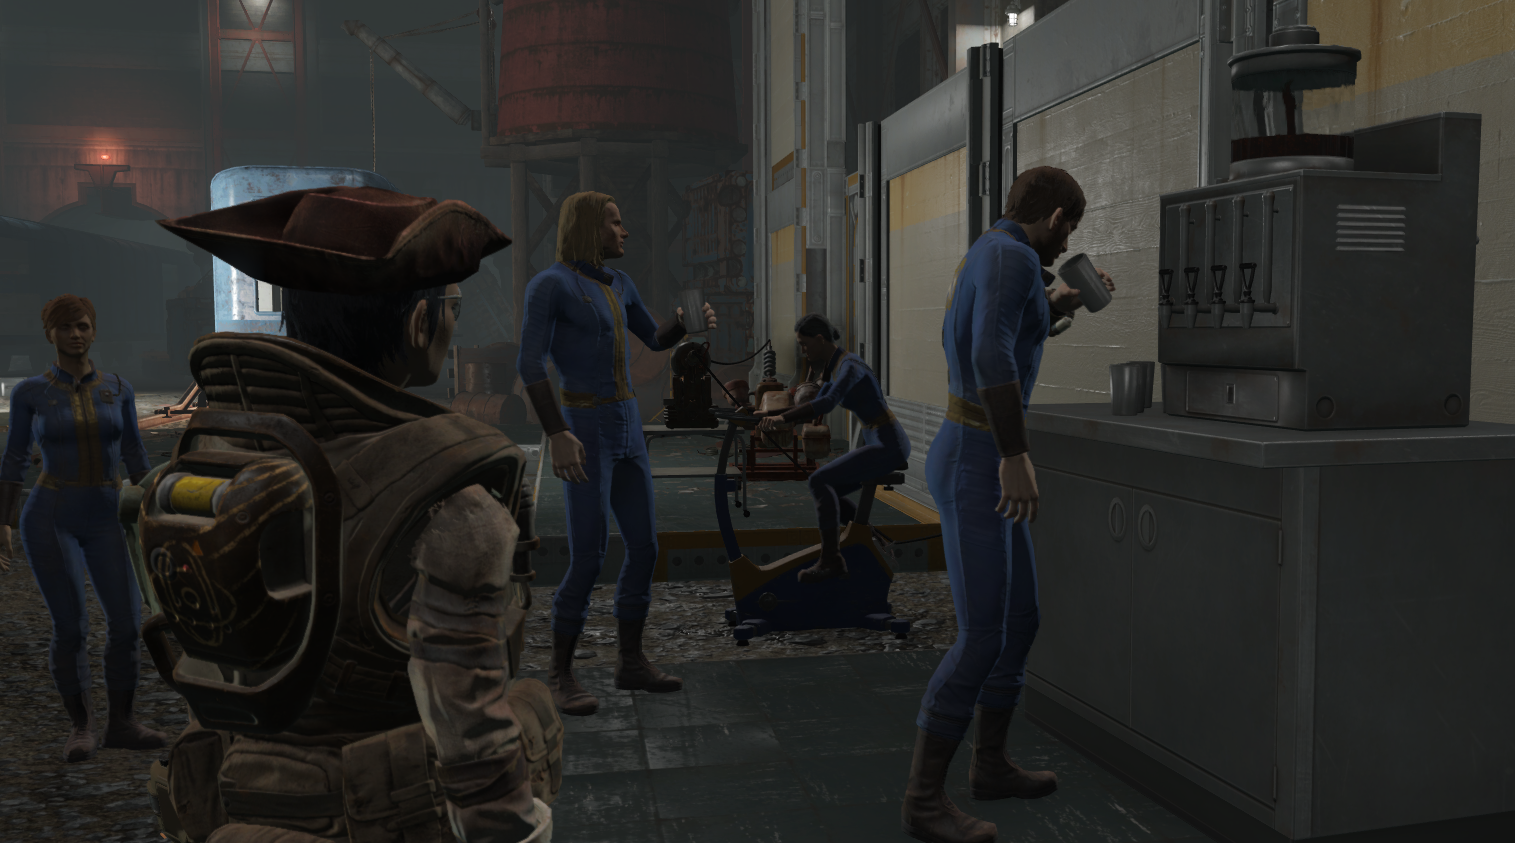 Fallout 4's Vault-Tec Workshop doesn't make you feel much like an